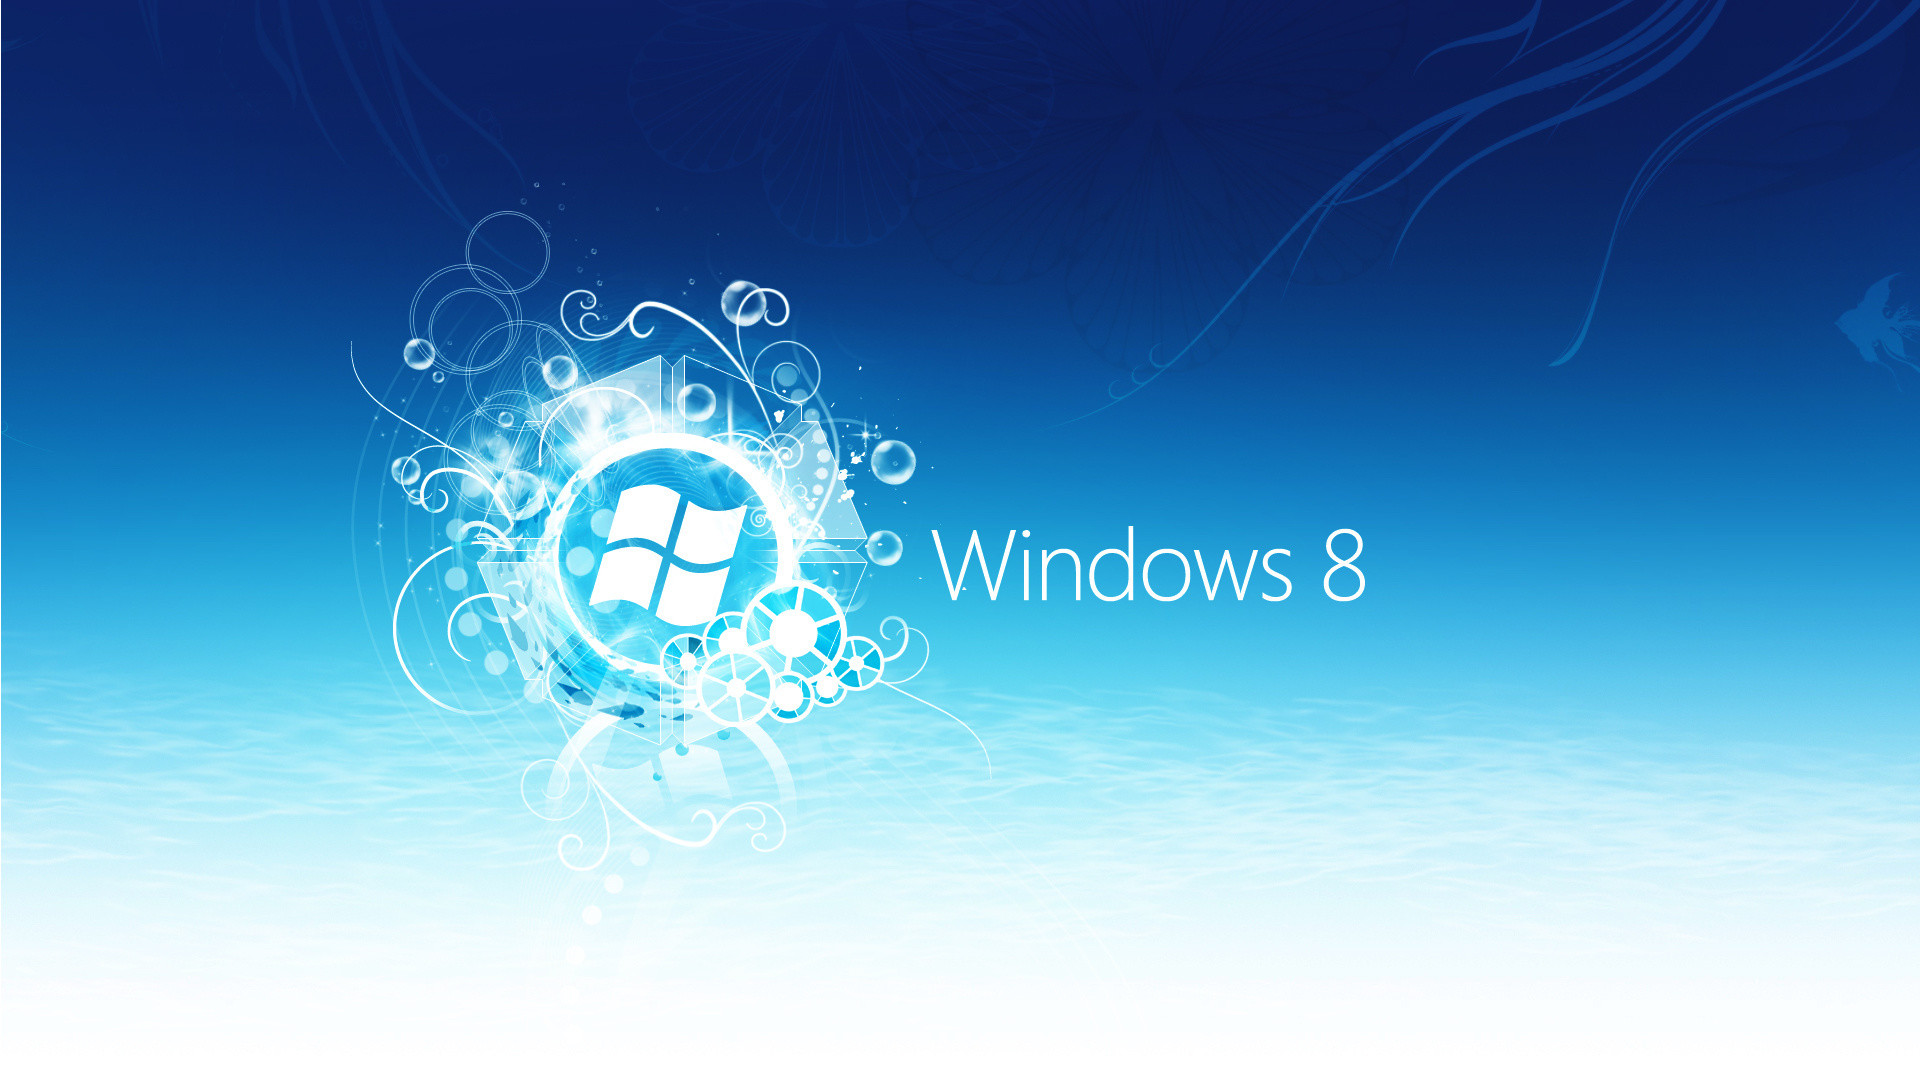 windows 8 hd wallpaper (78+ images)